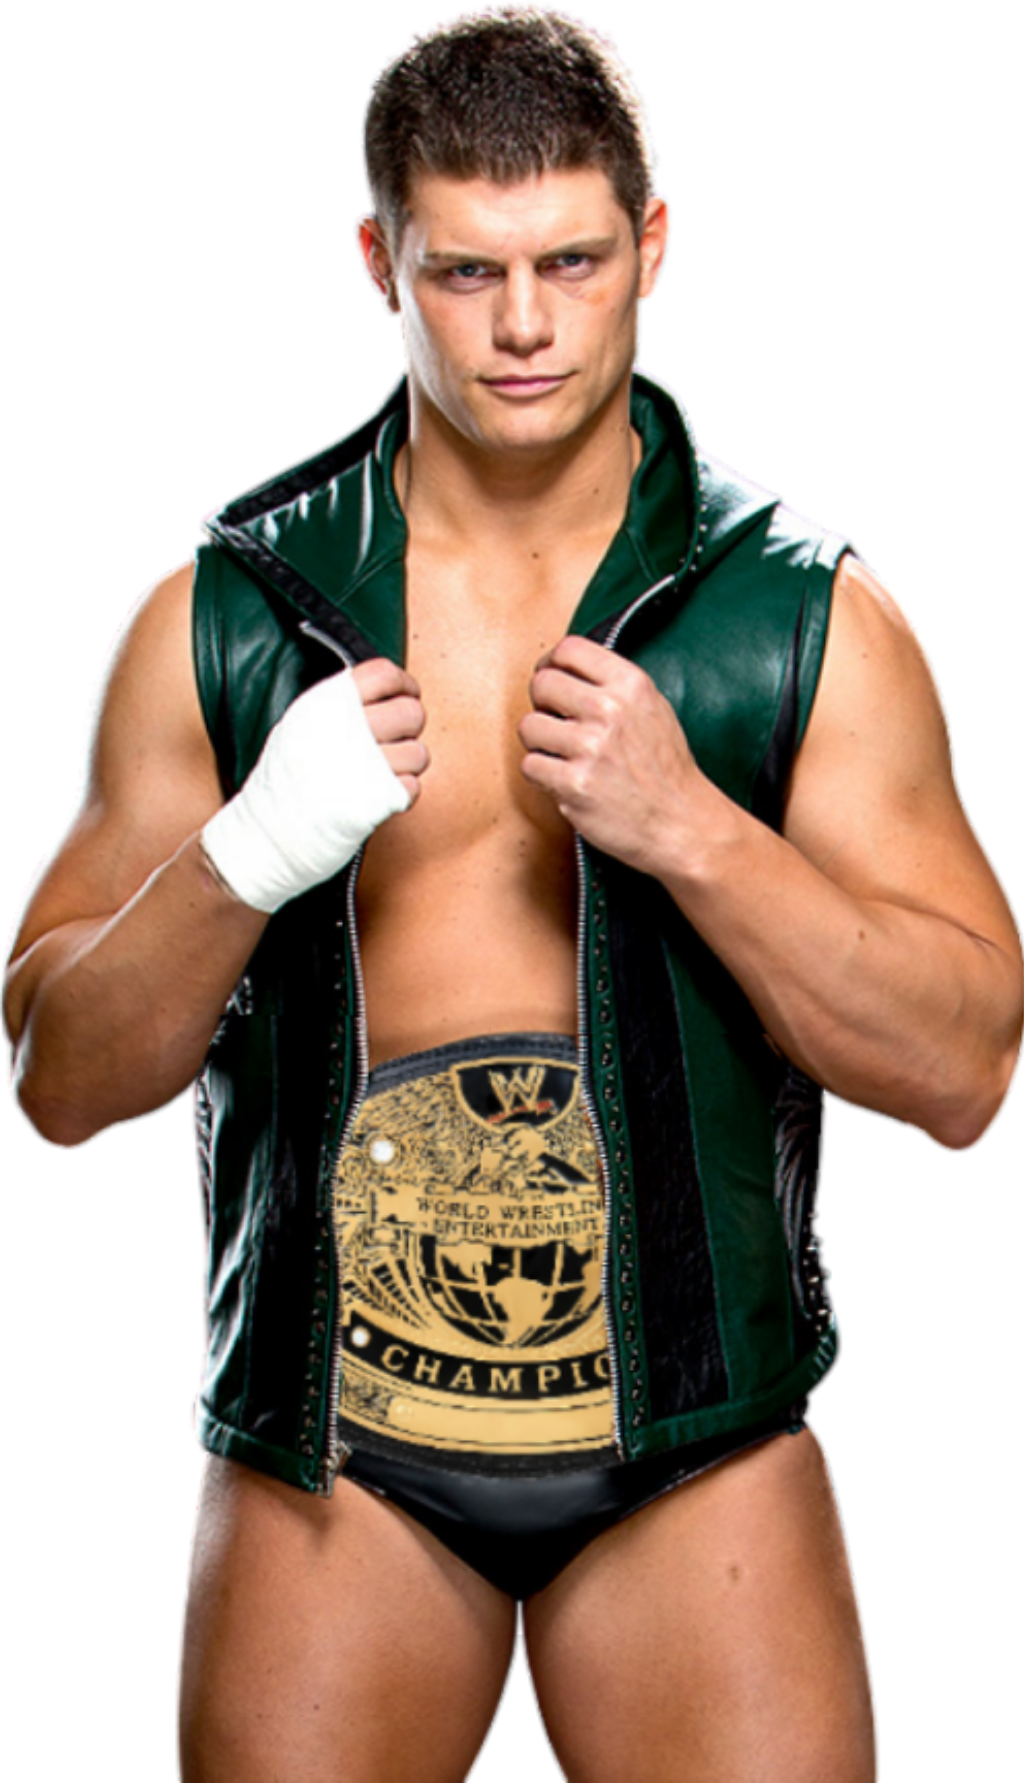 Cody Rhodes WWE Champion 2004 by NuruddinAyobWWE on DeviantArt